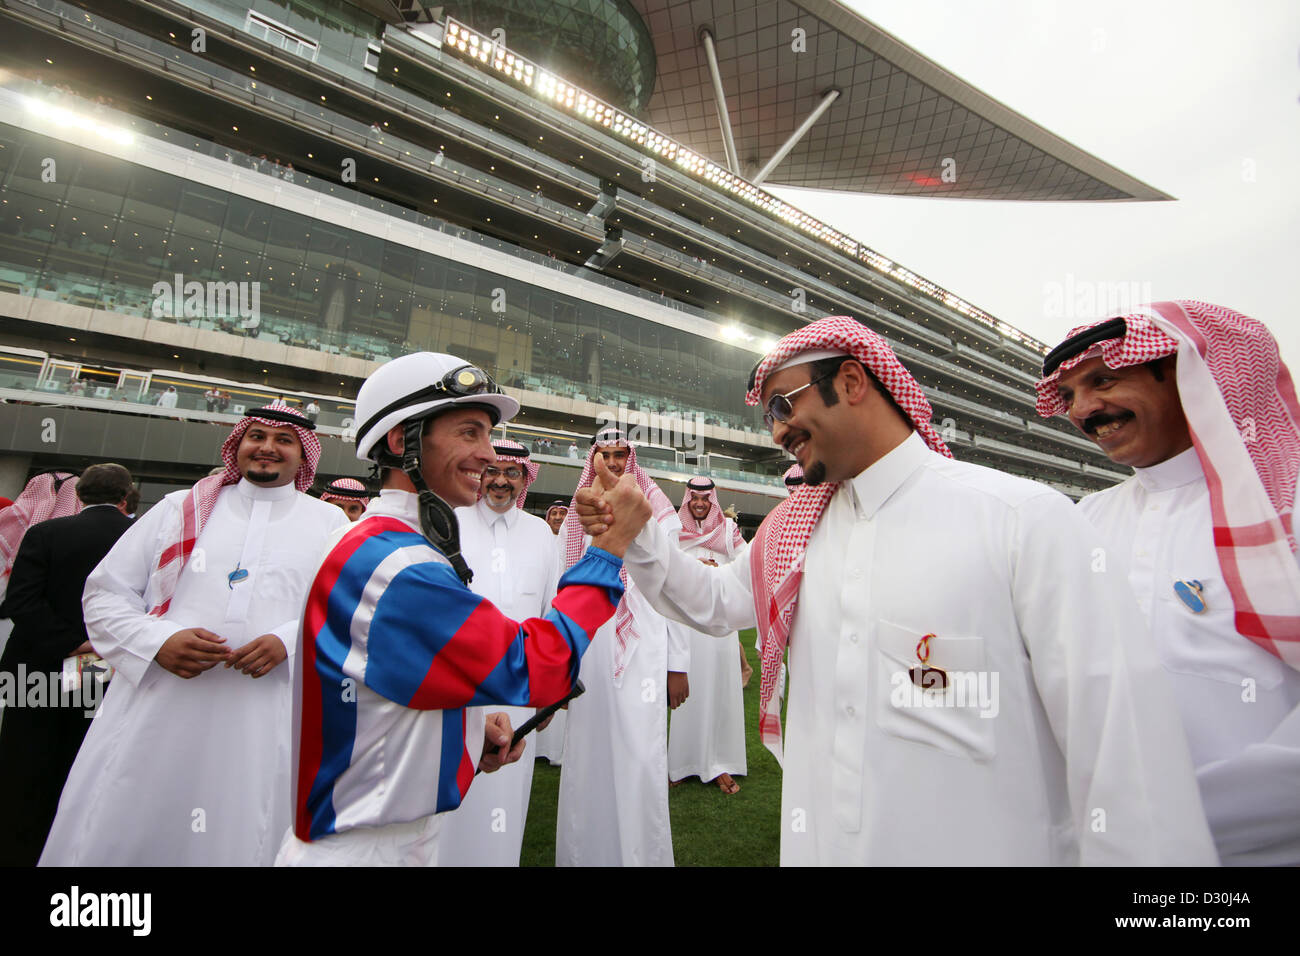 Dubai, United Arab Emirates, a man in jockey welcomed Fuehrring - Stock Image